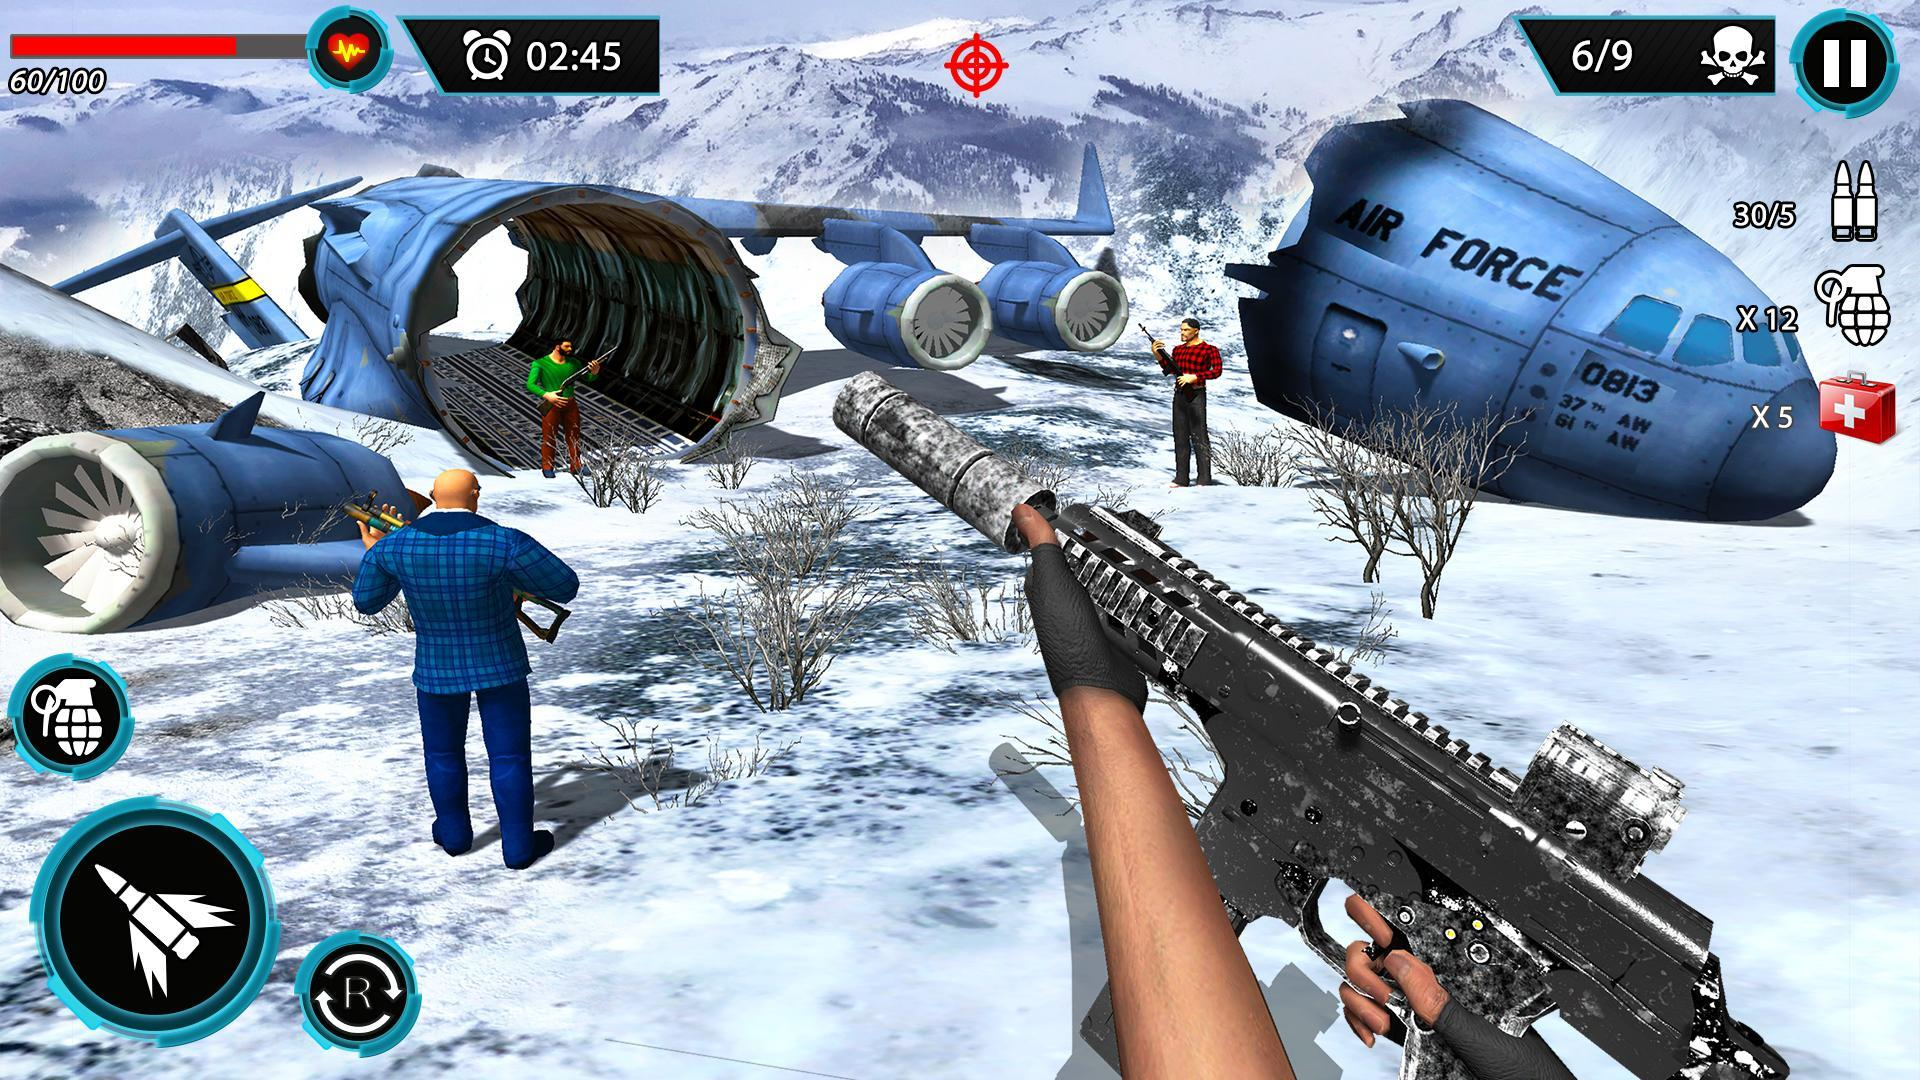 FPS Terrorist Secret Mission: Shooting Games 2020 1.3 Screenshot 13